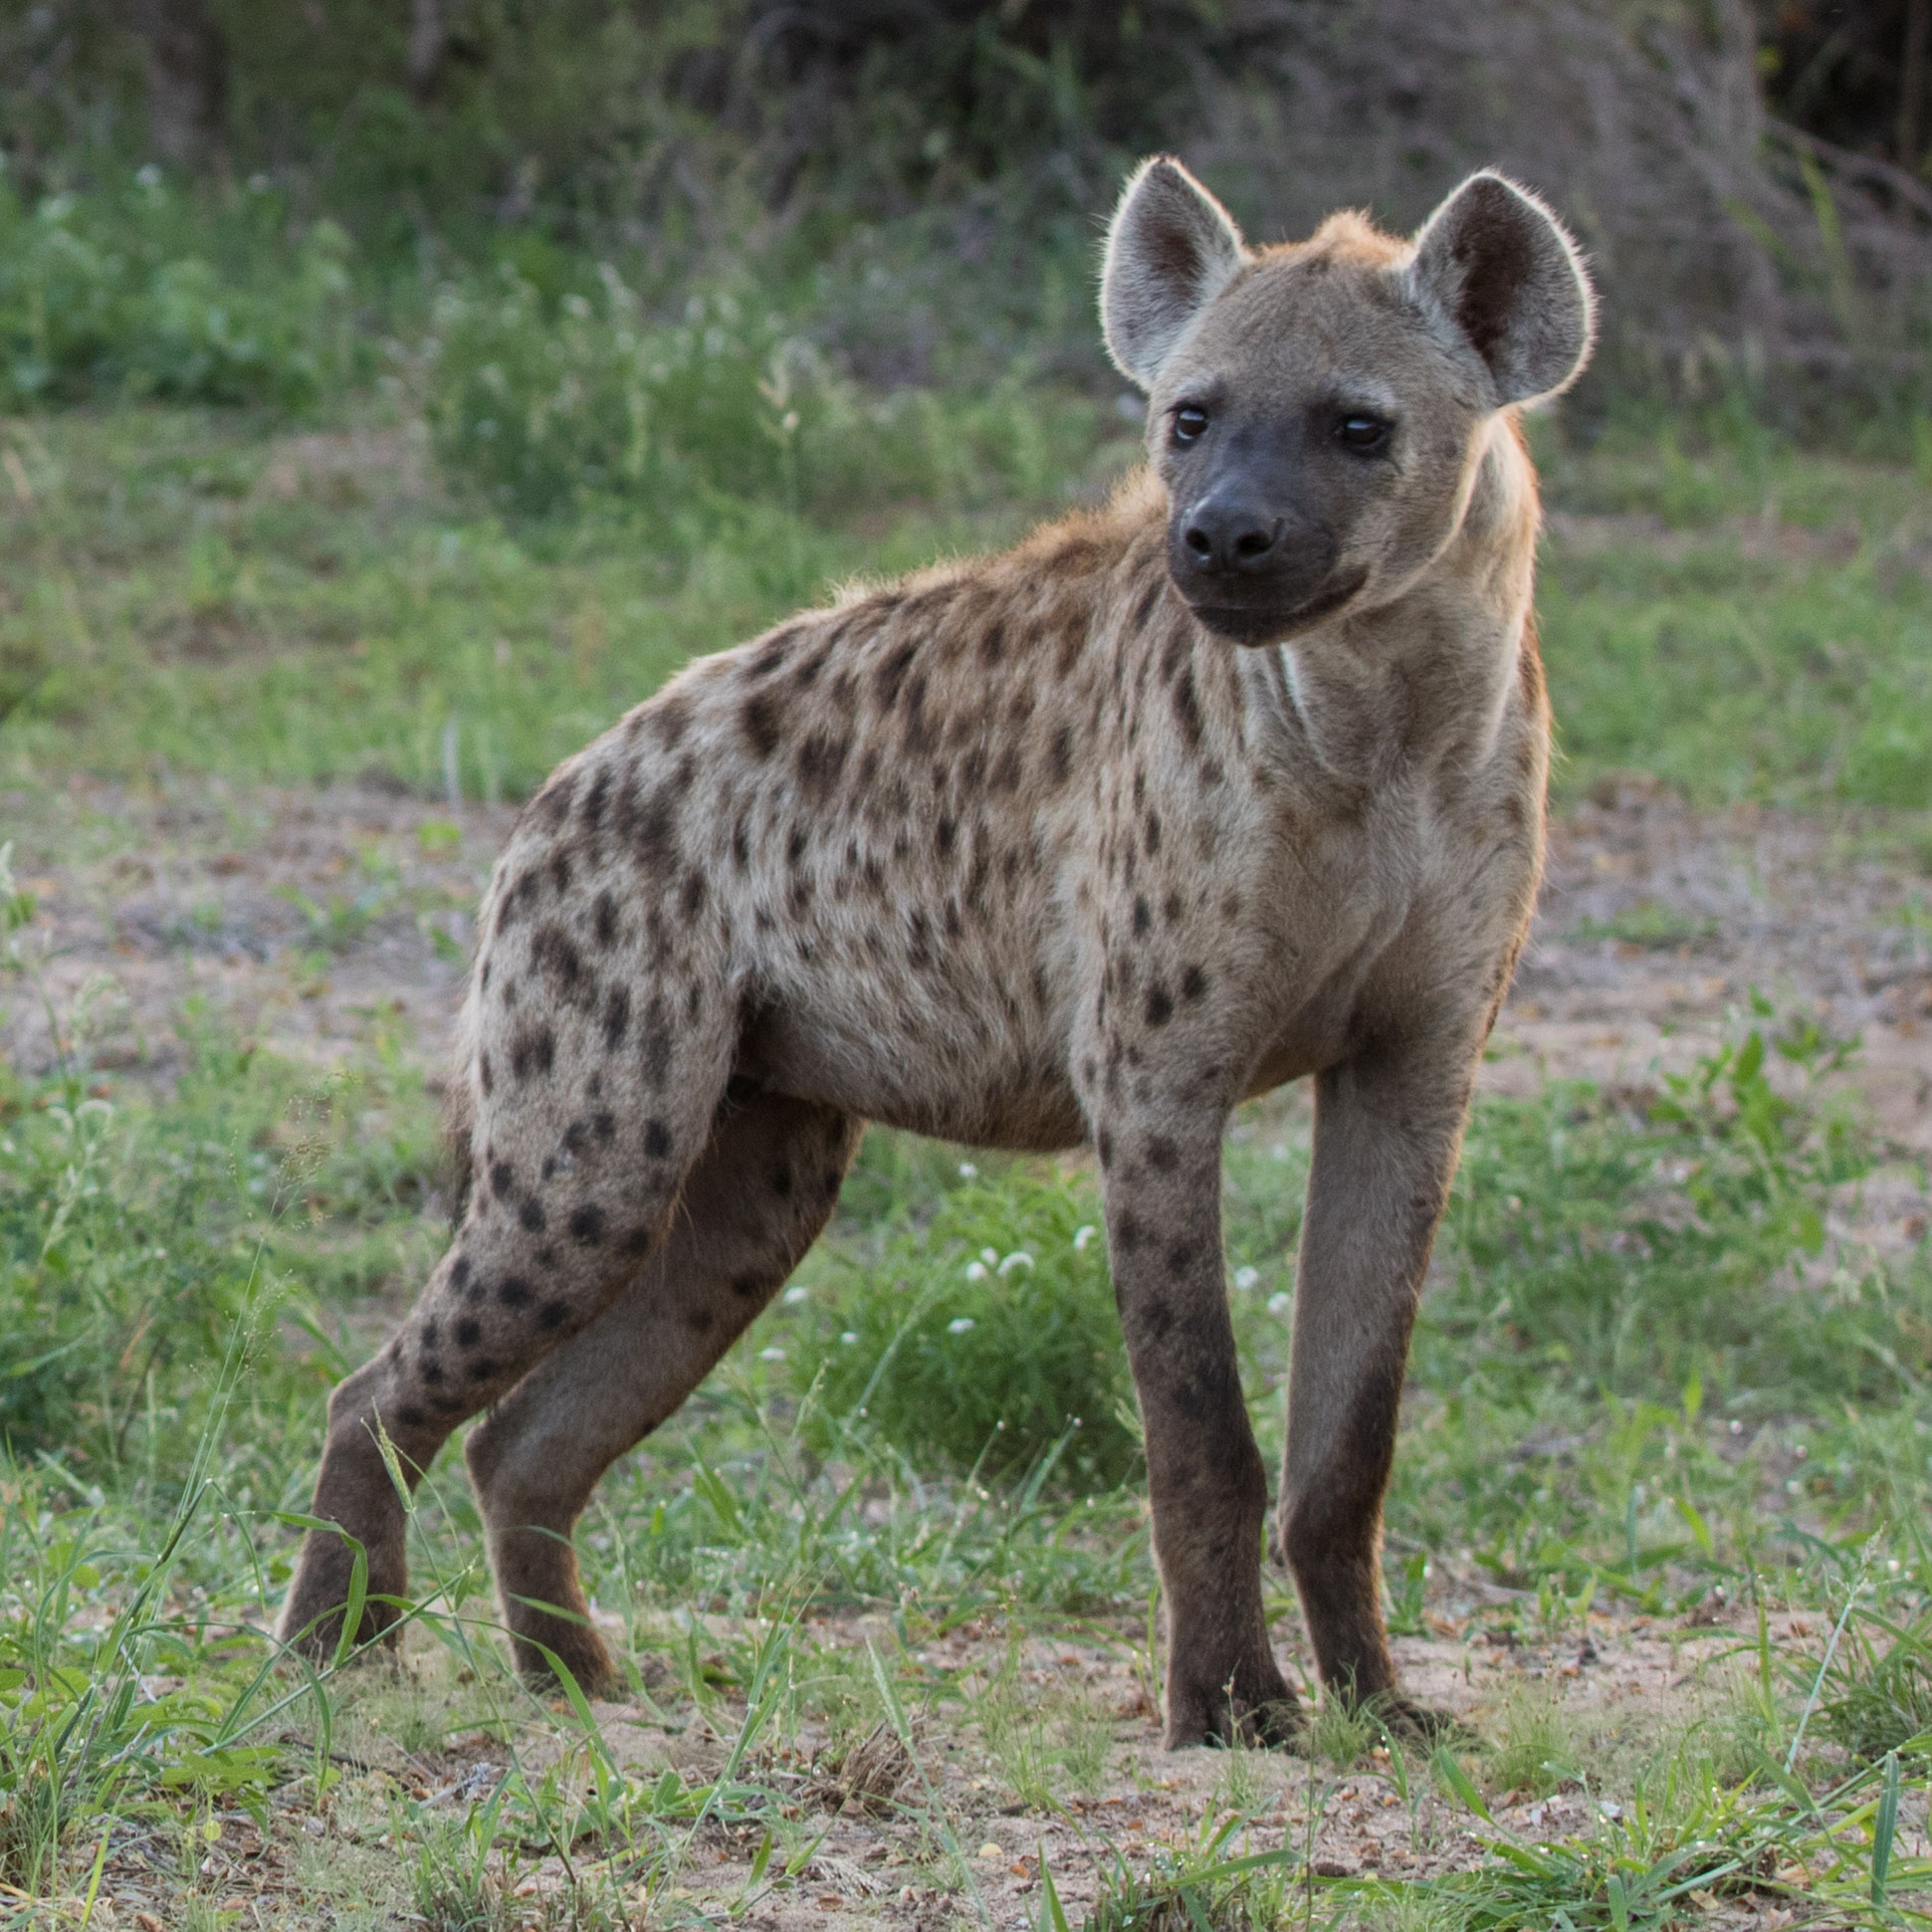 A spotted hyena looks into the distance, possibly towards another clan member.